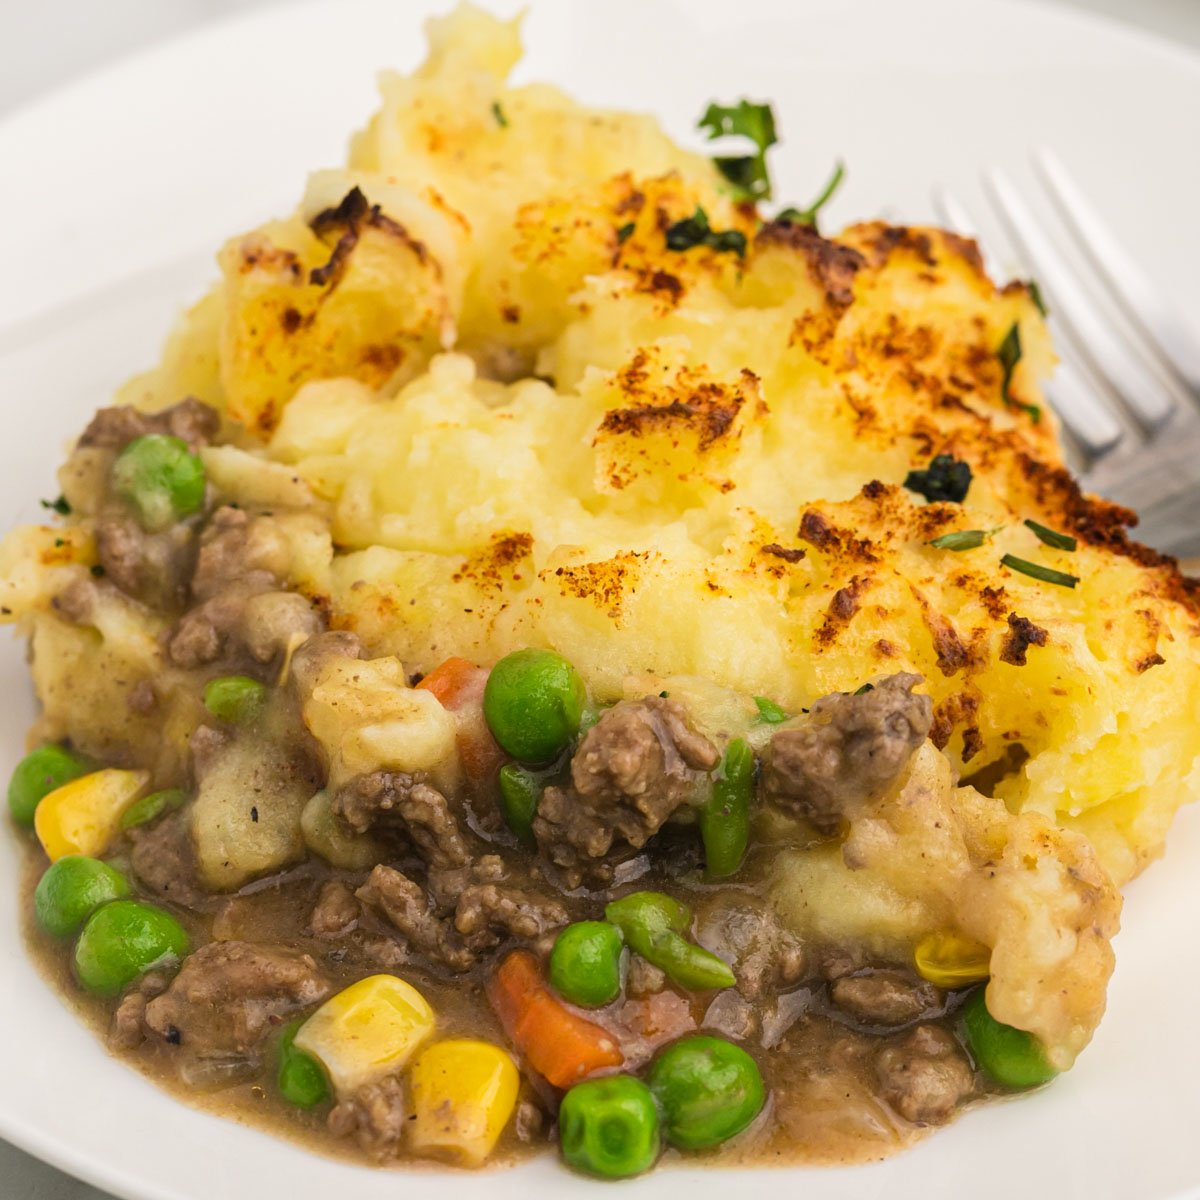 a plate of shepherd's pie made with beef